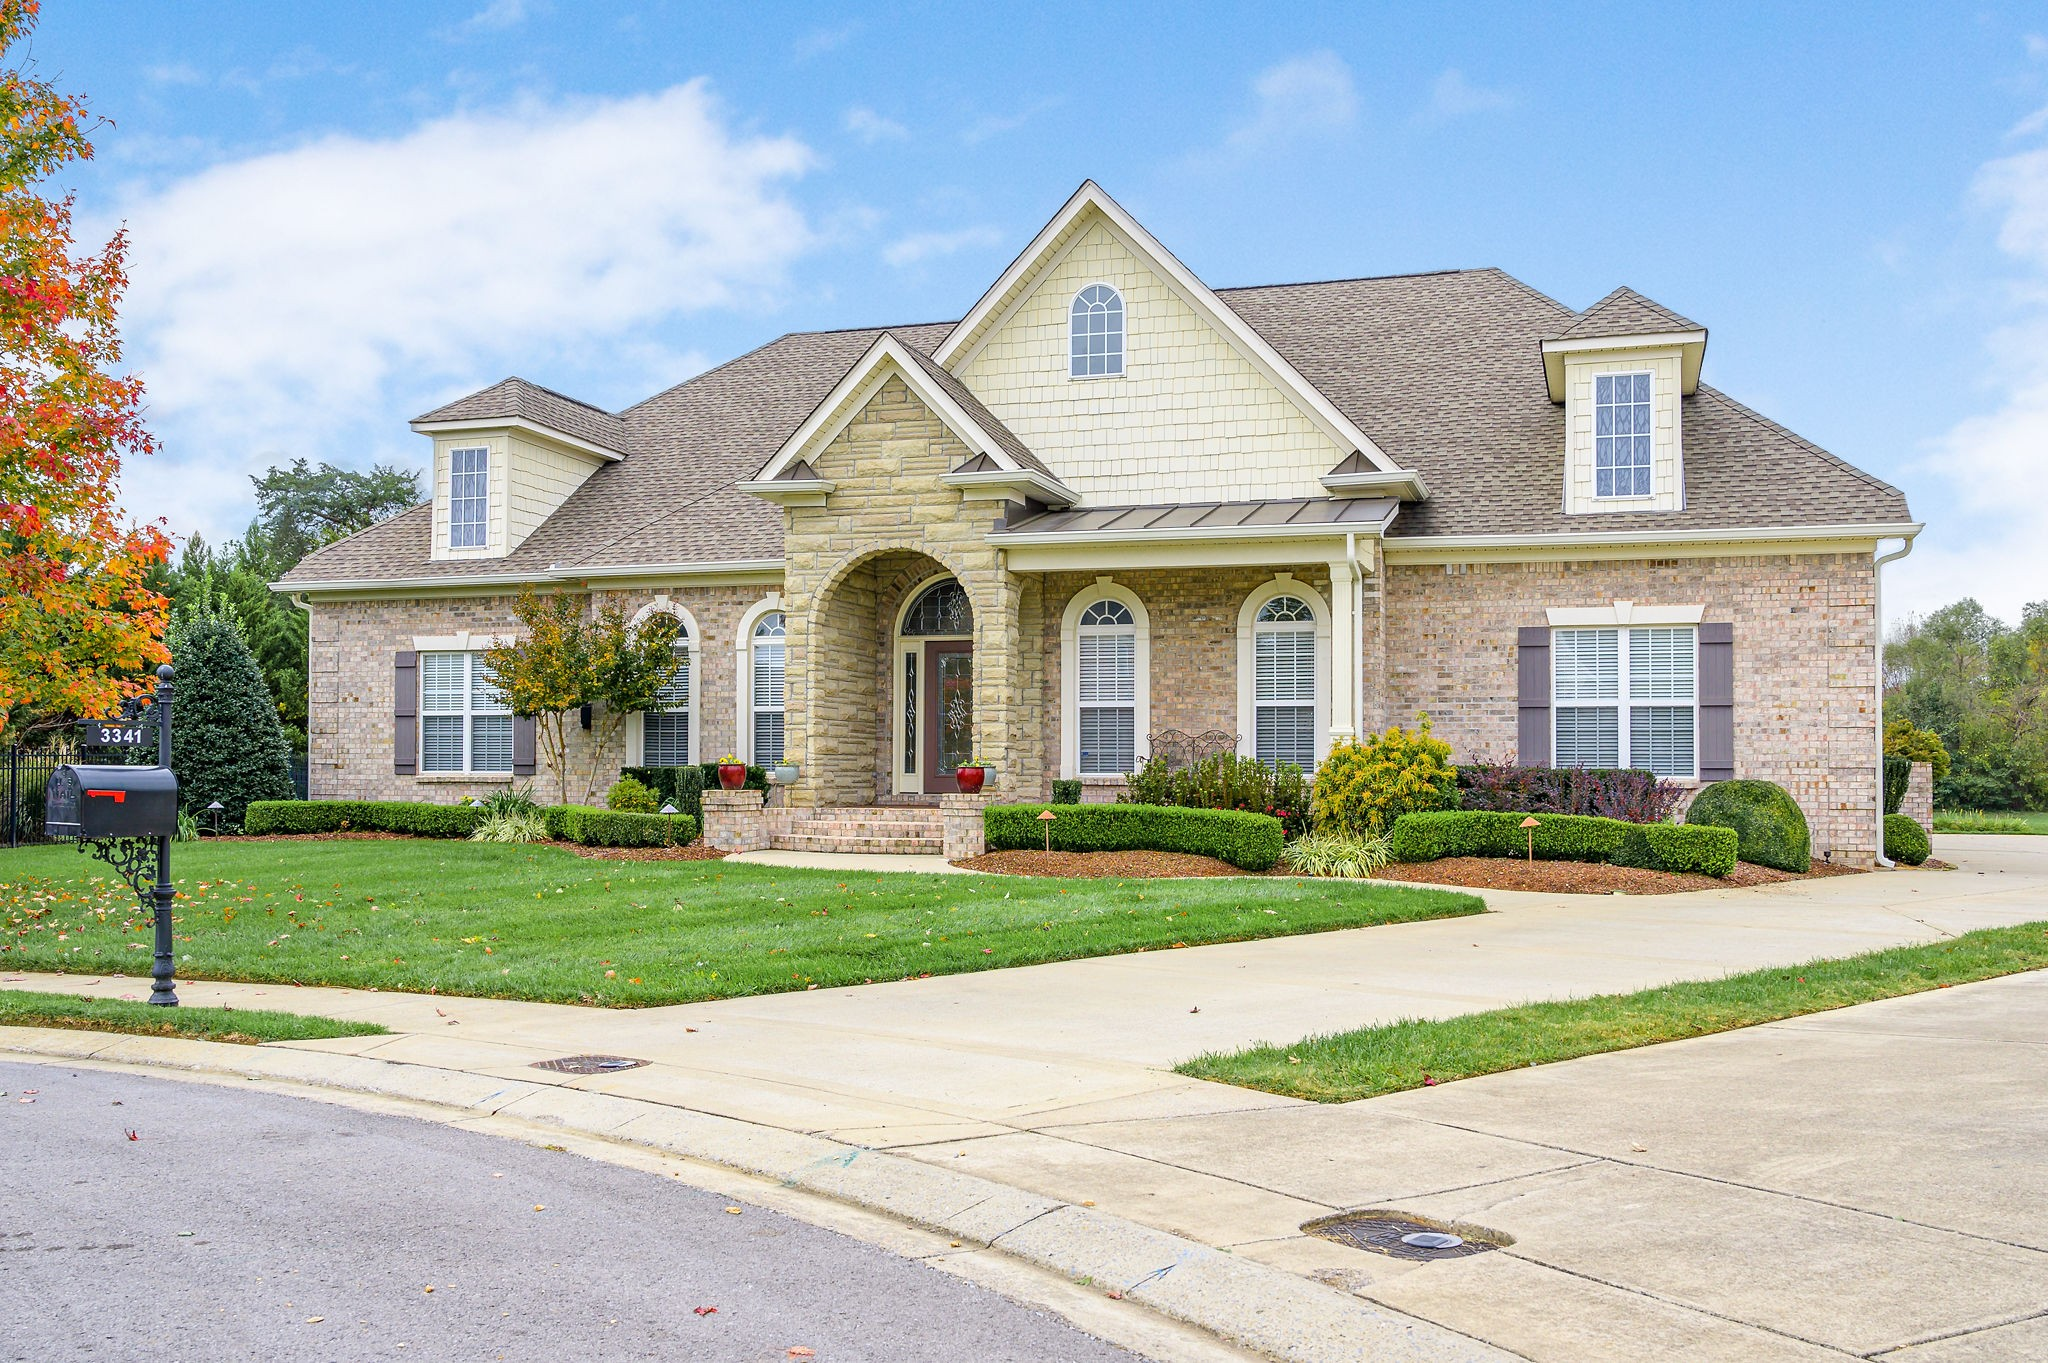 3341 Granite Springs Way, Murfreesboro, TN 37130 - Murfreesboro, TN real estate listing